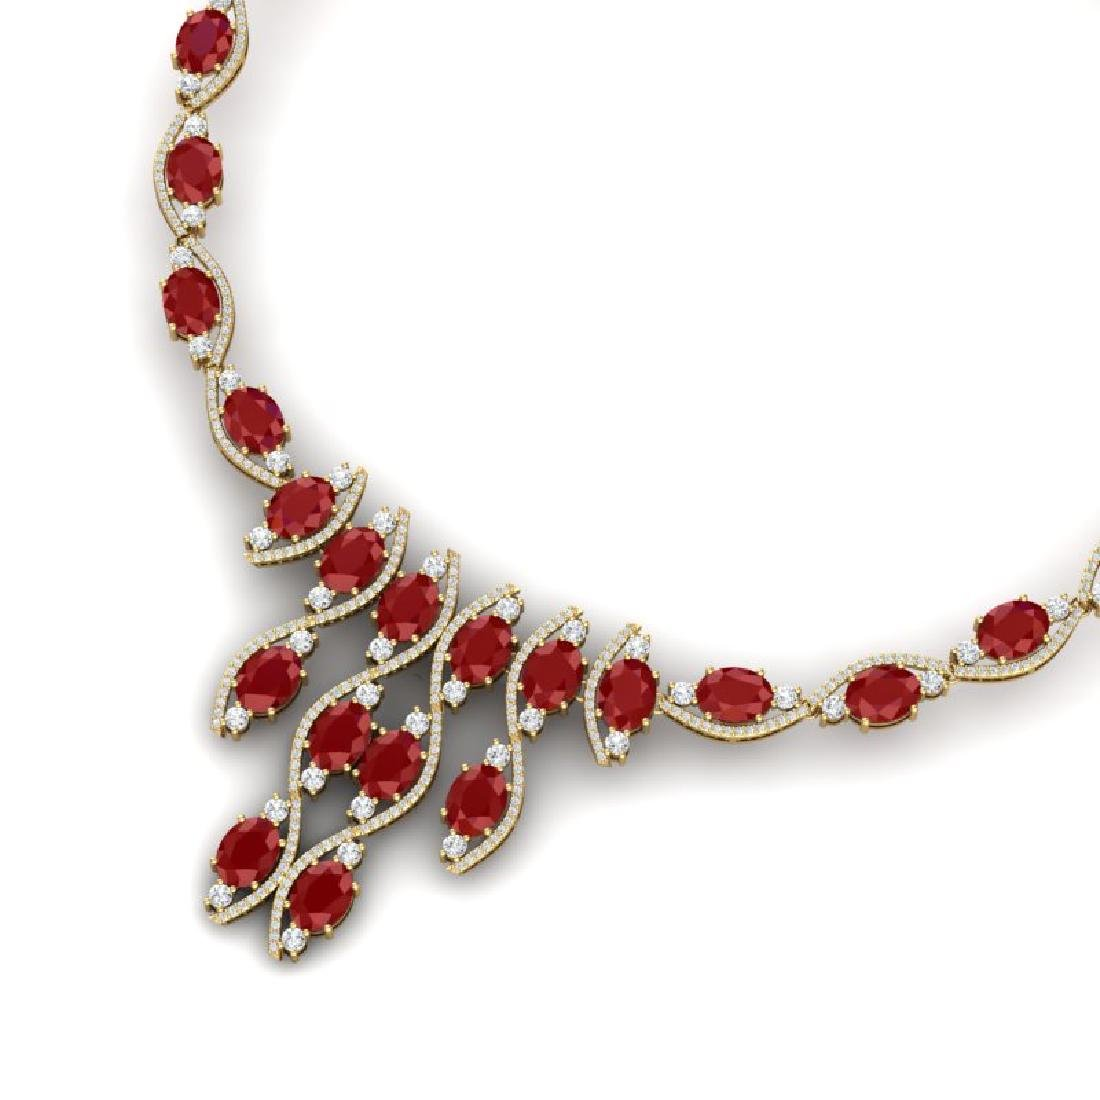 65.93 CTW Royalty Ruby & VS Diamond Necklace 18K Yellow